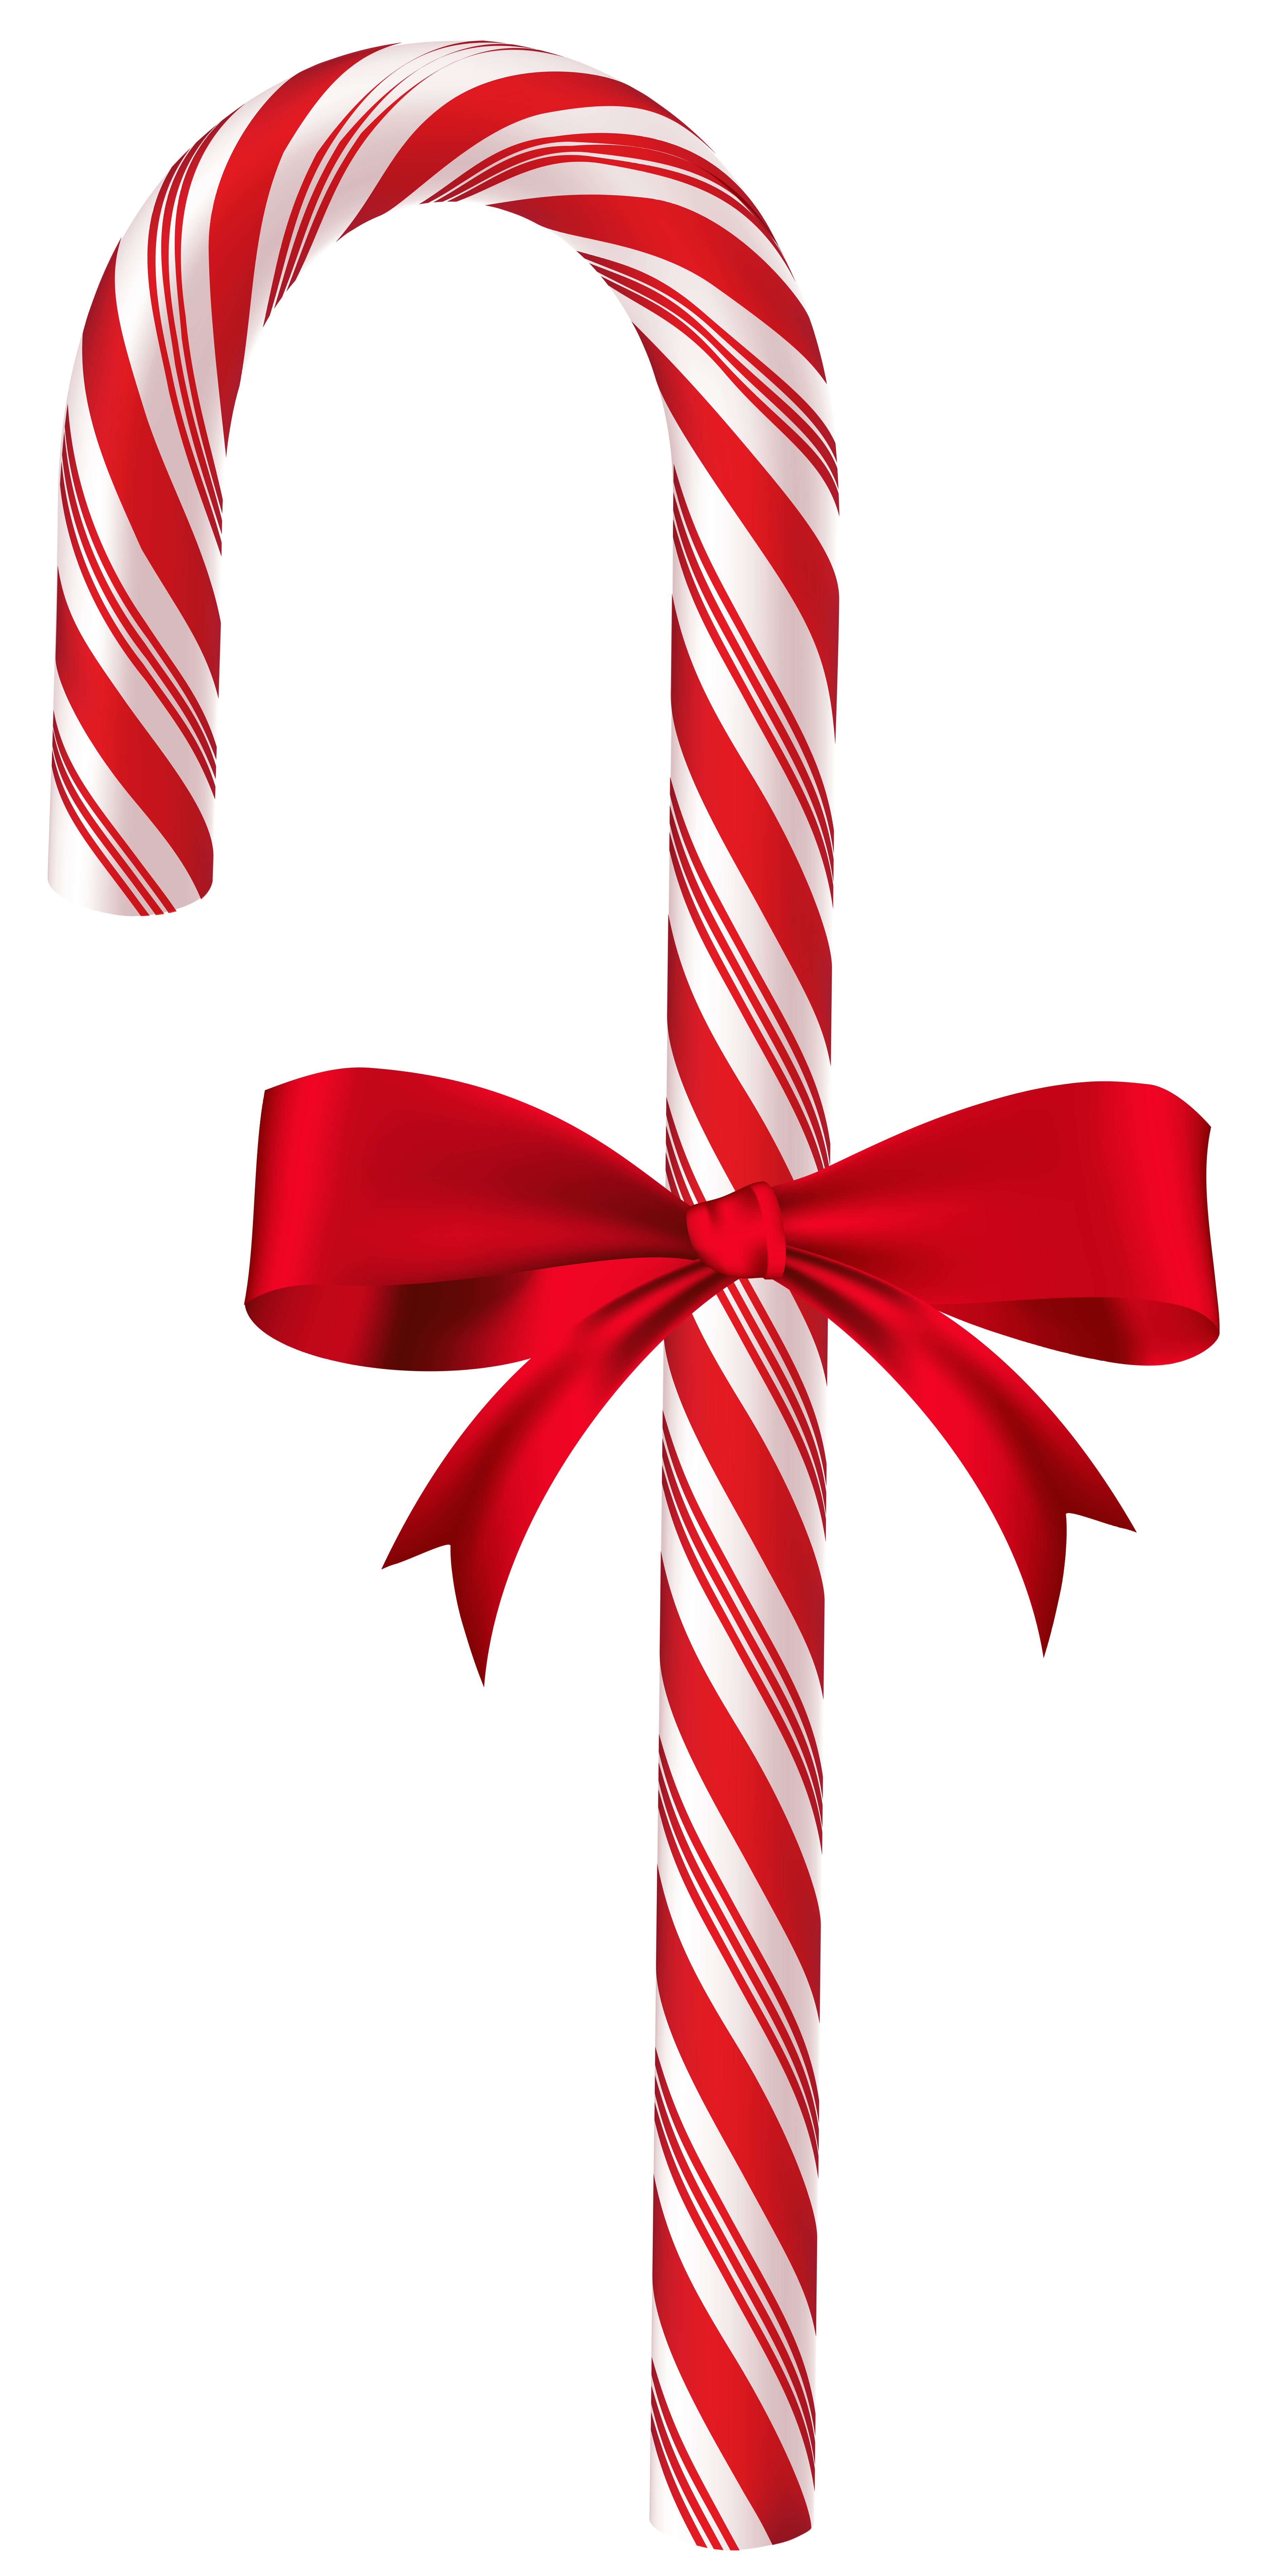 Queen clipart candy. Cane with red bow